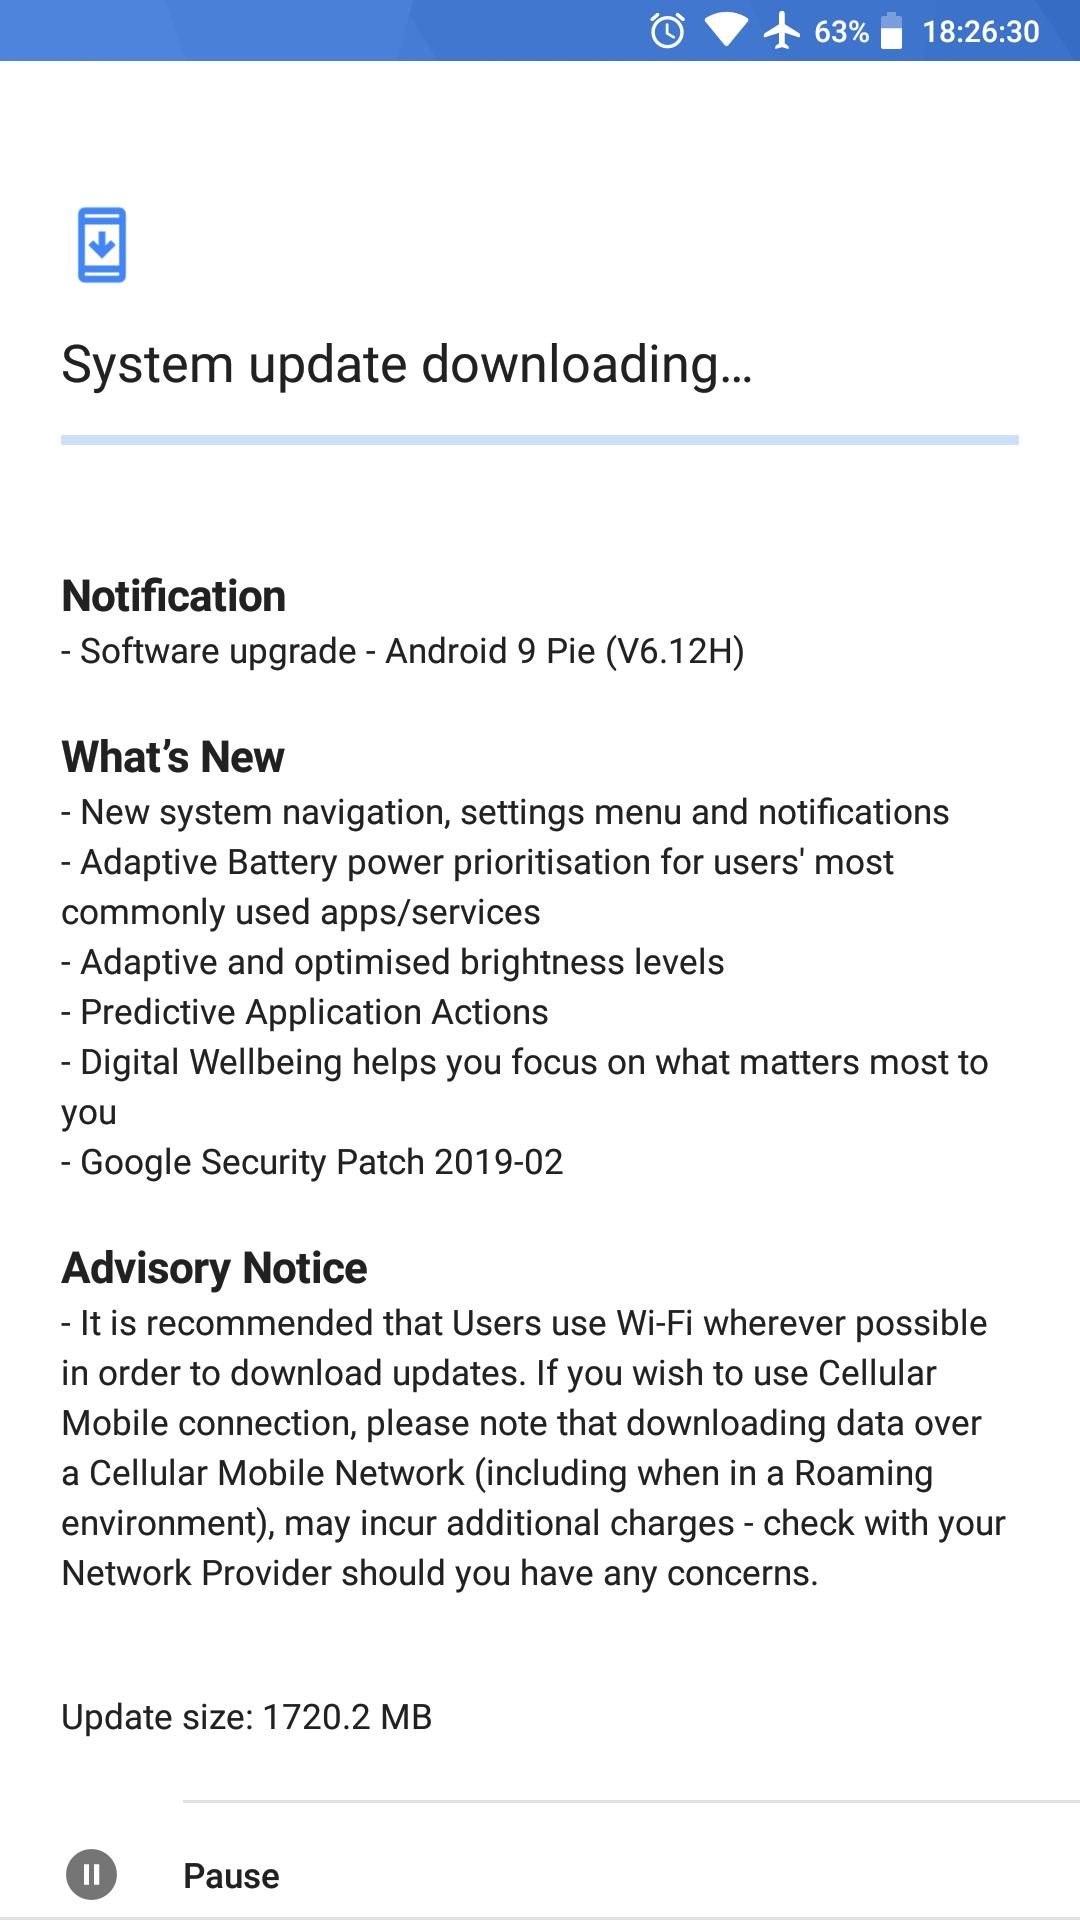 Nokia 6 (2017) gets Android 9 Pie as HMD keeps its 2-year update promise